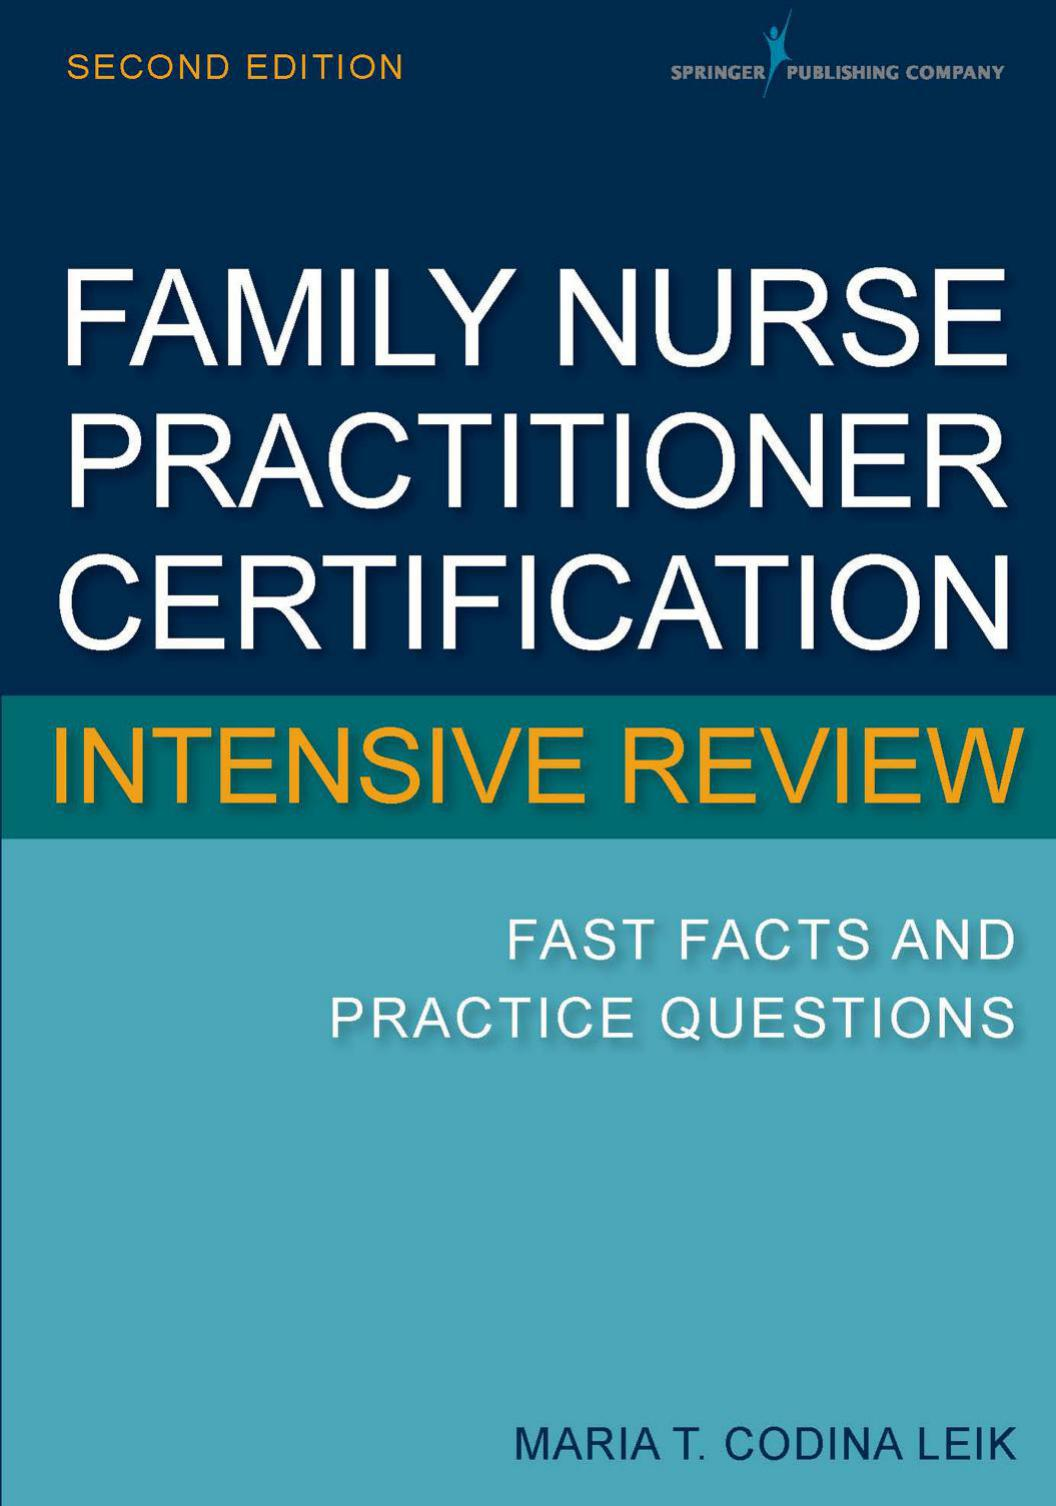 Family Nurse Practitioner Certification Intensive Review: Second Edition - eBook, PDF (Fast instant delivery)